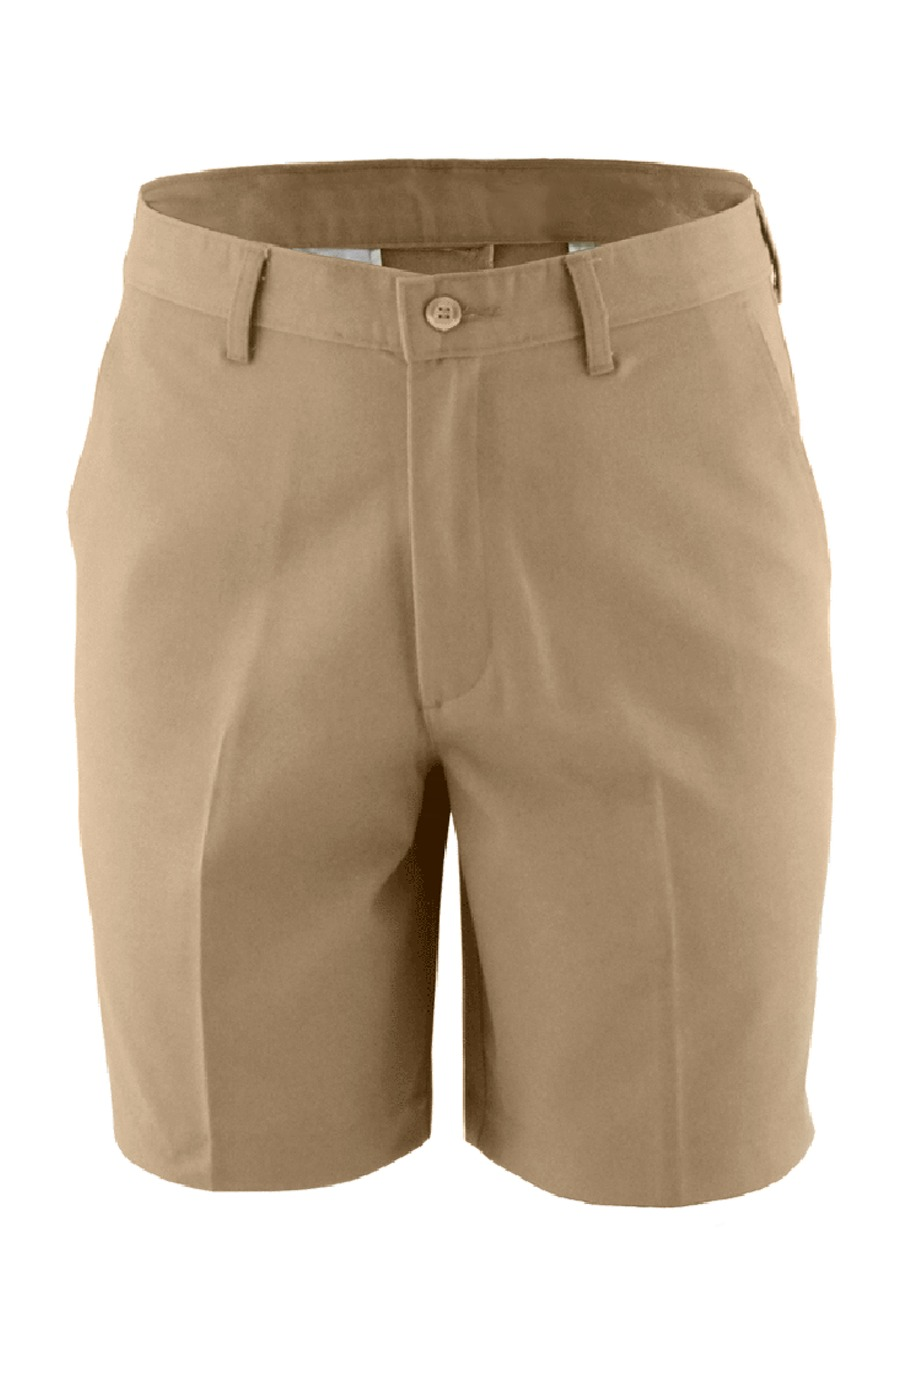 Edwards Garment 2450 - Men's Flat Front Short